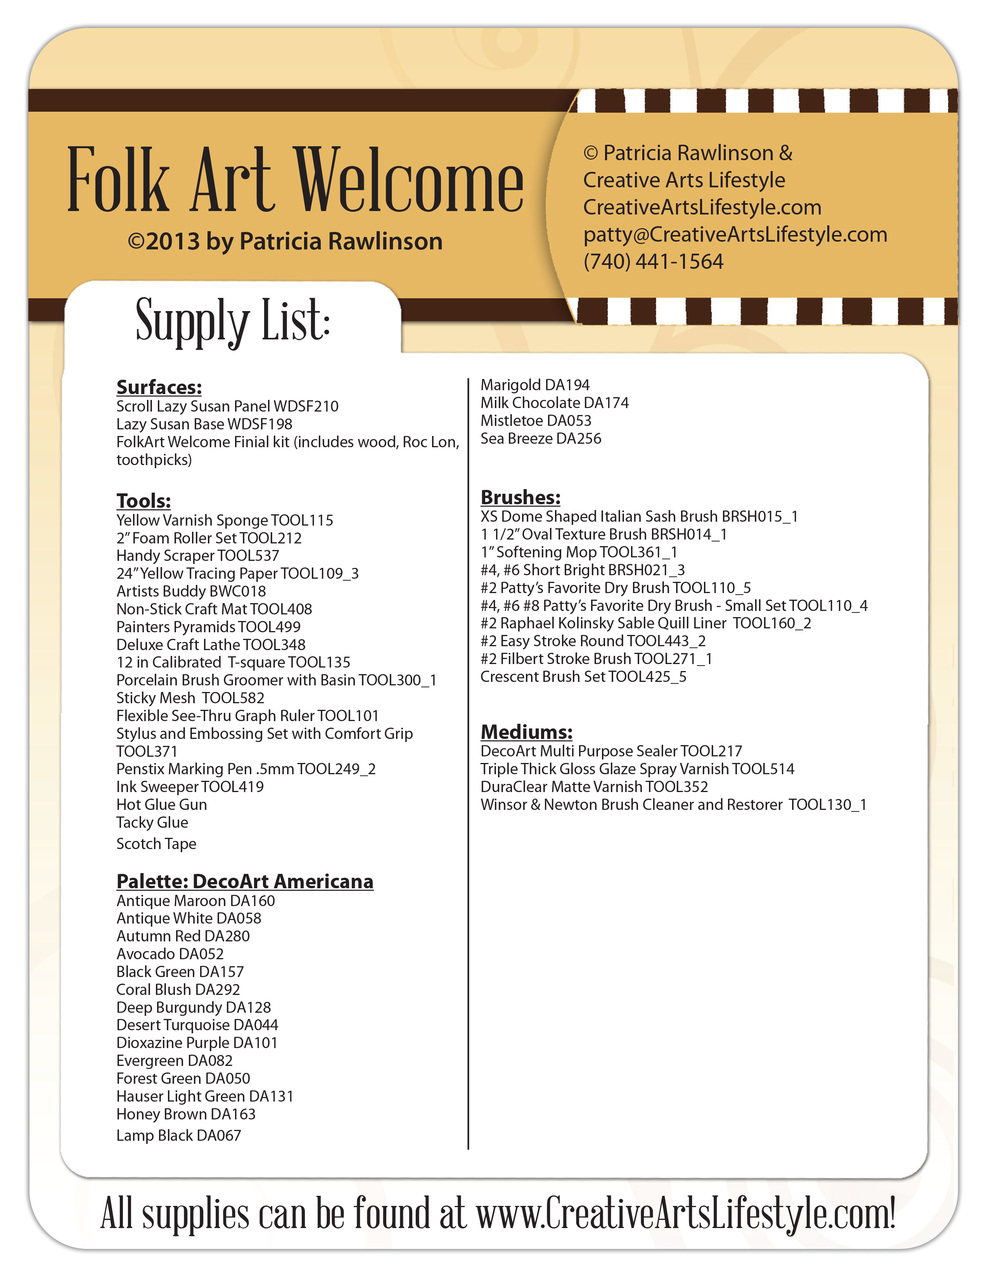 FolkArt Welcome - E-Packet - Patricia Rawlinson